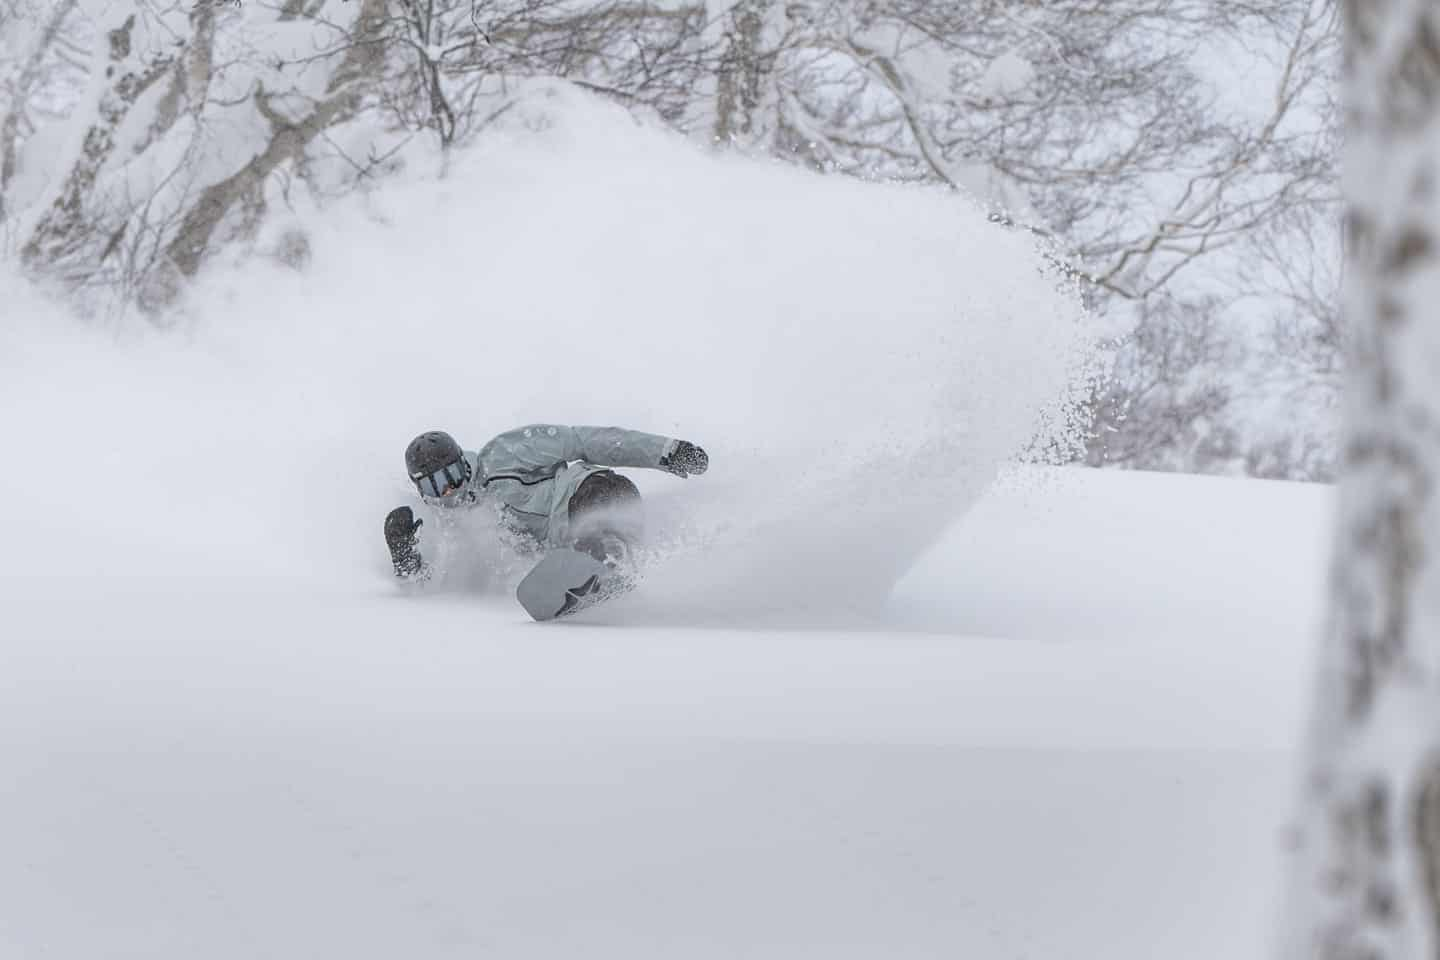 World Snow Wrap, January 8 - Japan is Going Off, Huge Snow Totals in Whistler, Mid-week Pow in Jackson,  Resorts Remain Closed in Europe